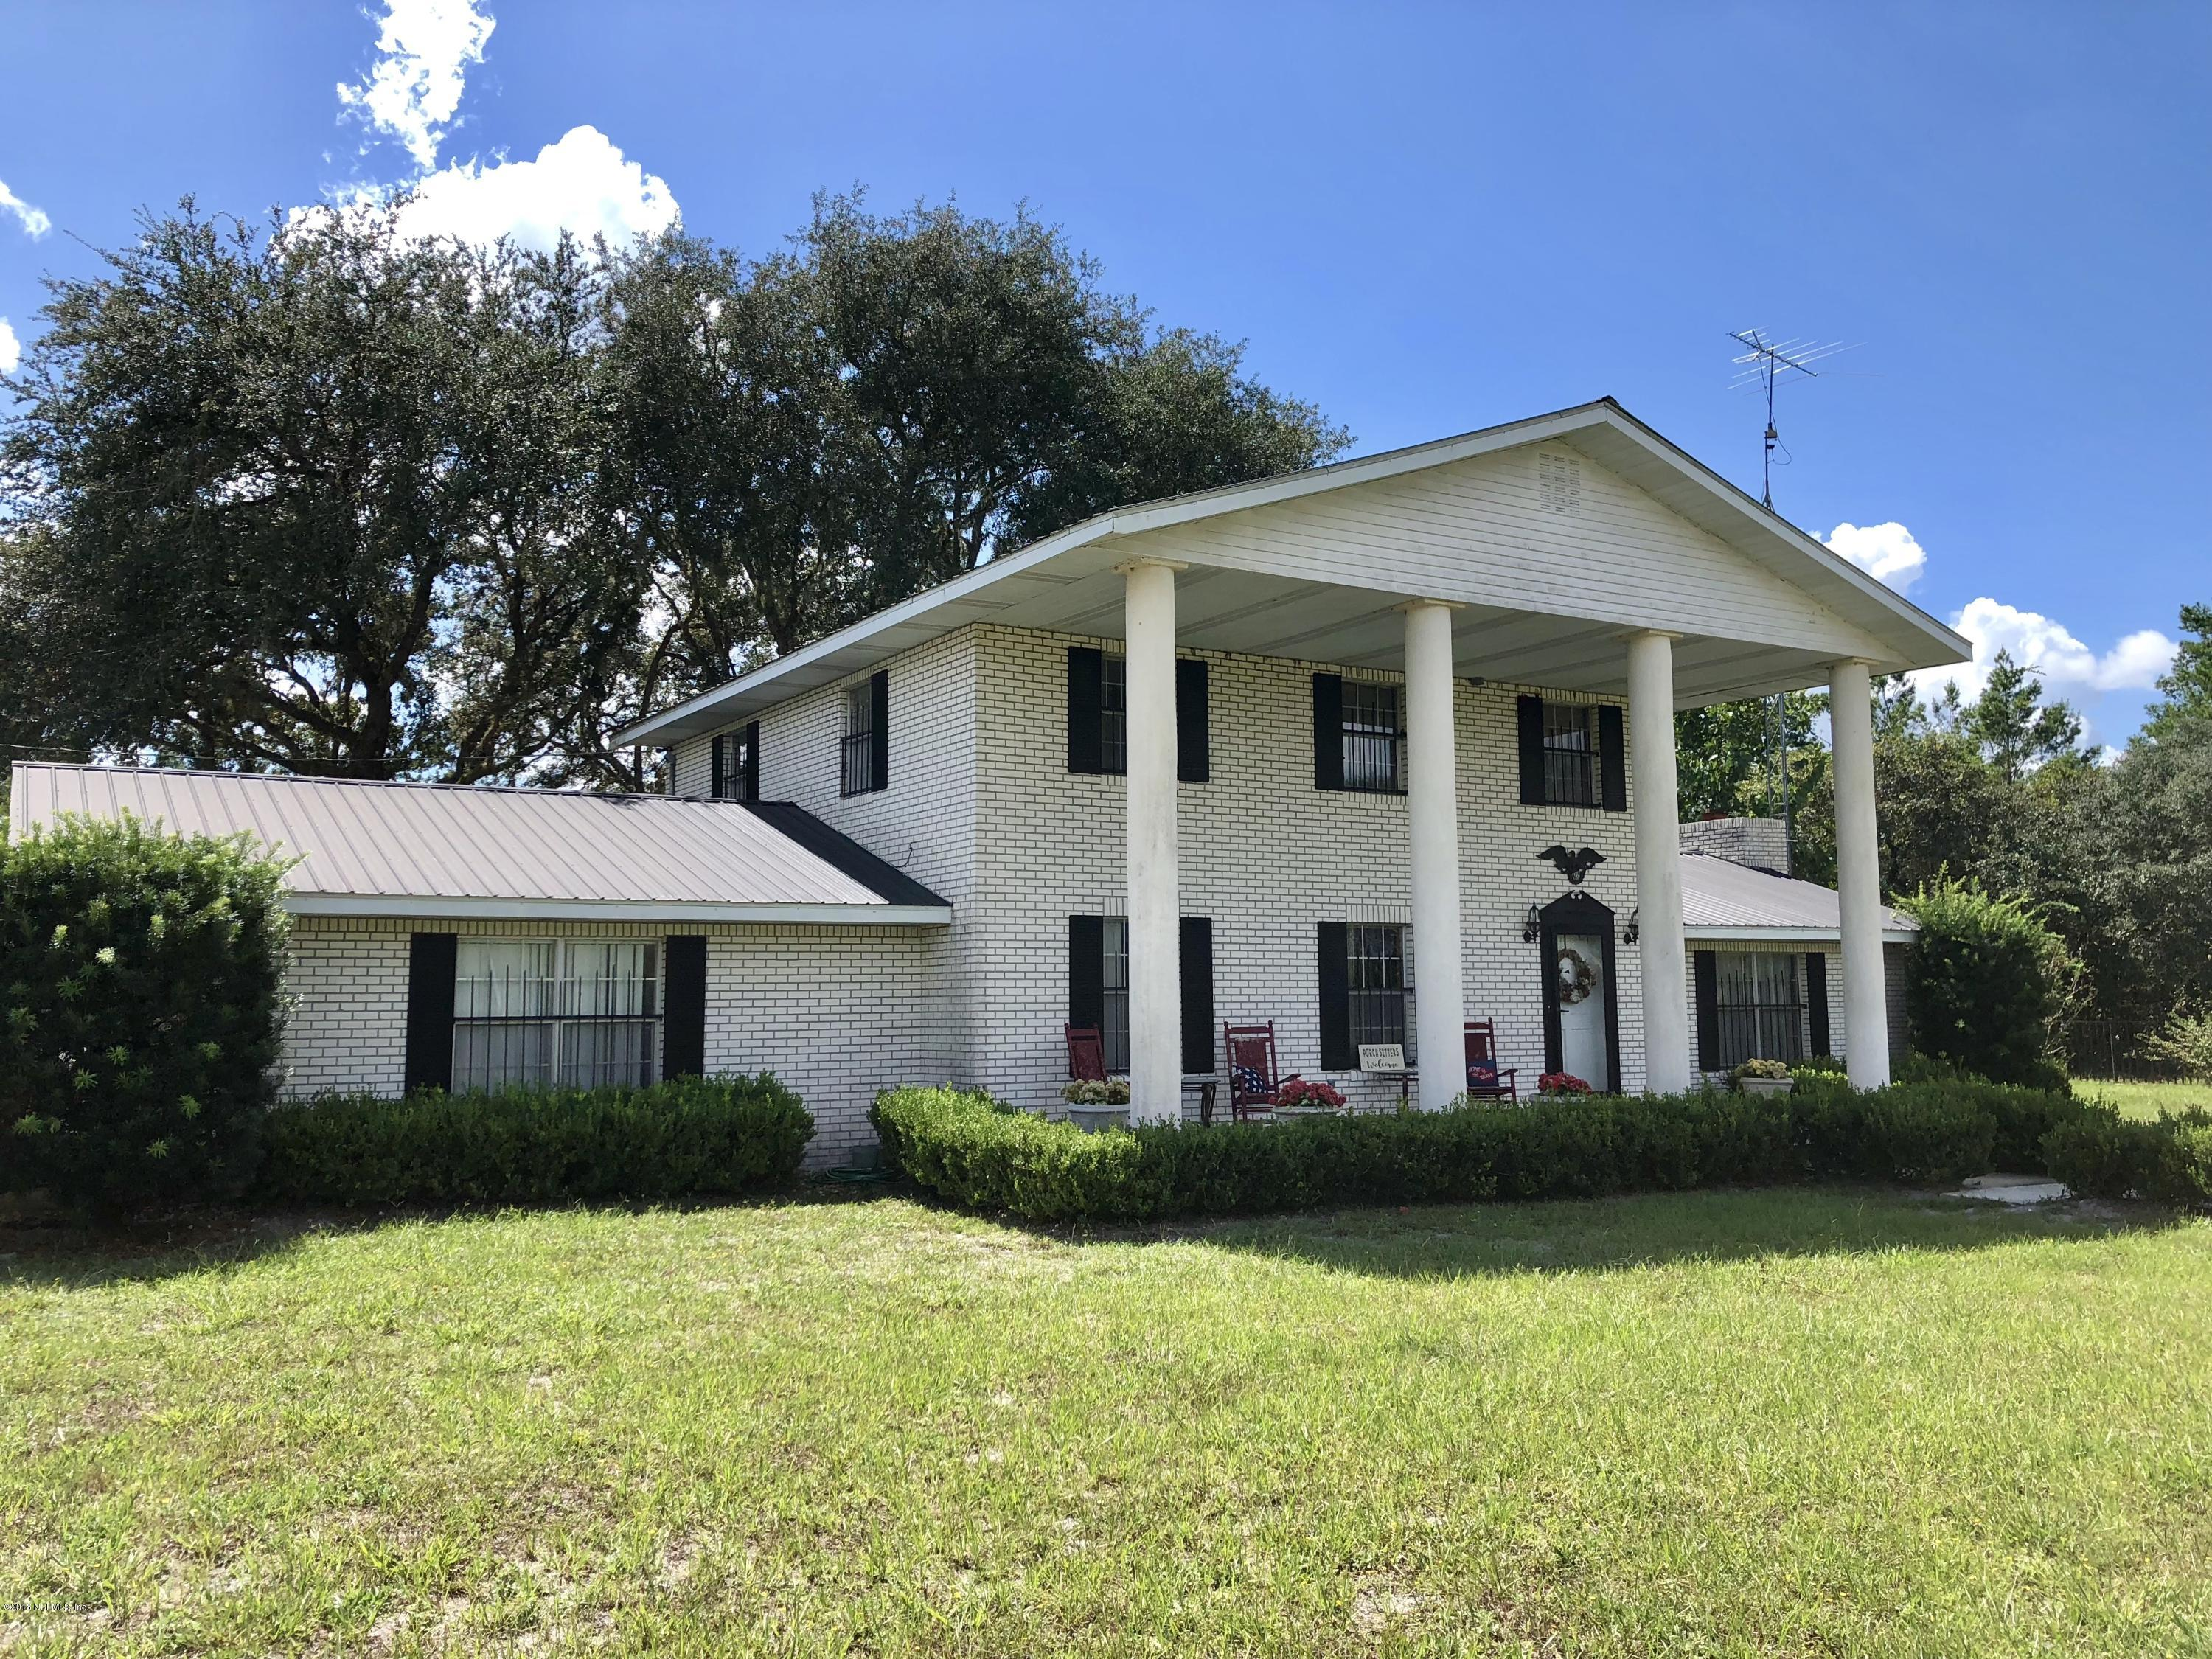 527 COUNTY ROAD 310, PALATKA, FLORIDA 32177, 4 Bedrooms Bedrooms, ,3 BathroomsBathrooms,Residential - single family,For sale,COUNTY ROAD 310,959367